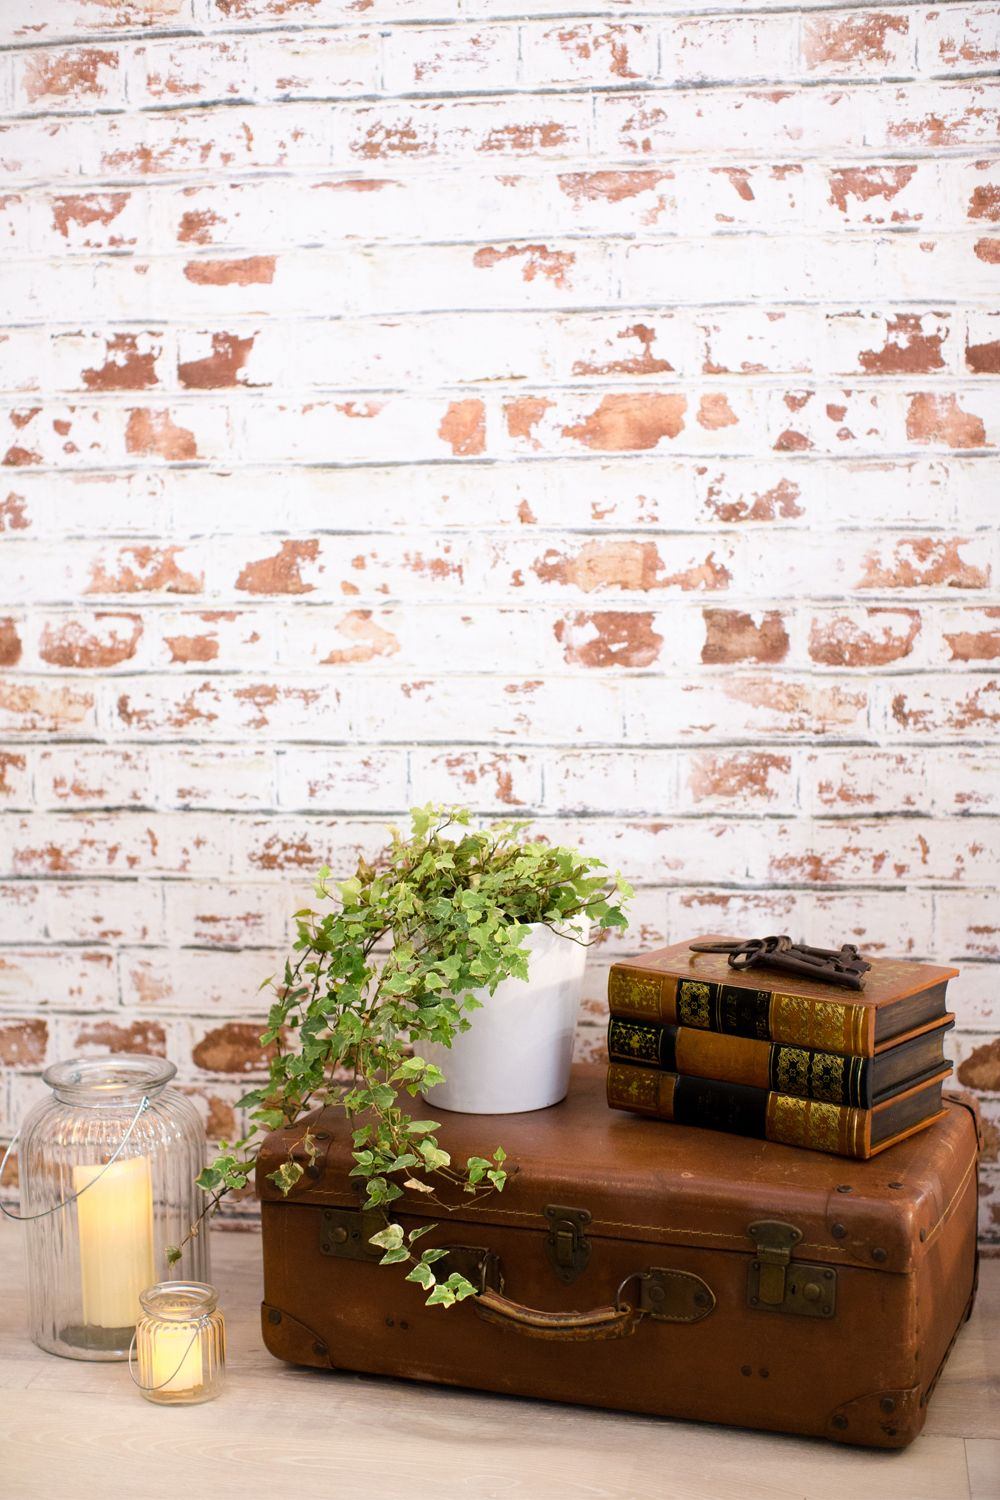 We need to talk about kevin mccloud textured wallpaper white we need to talk about kevin mccloud painted brick wallspaint amipublicfo Gallery